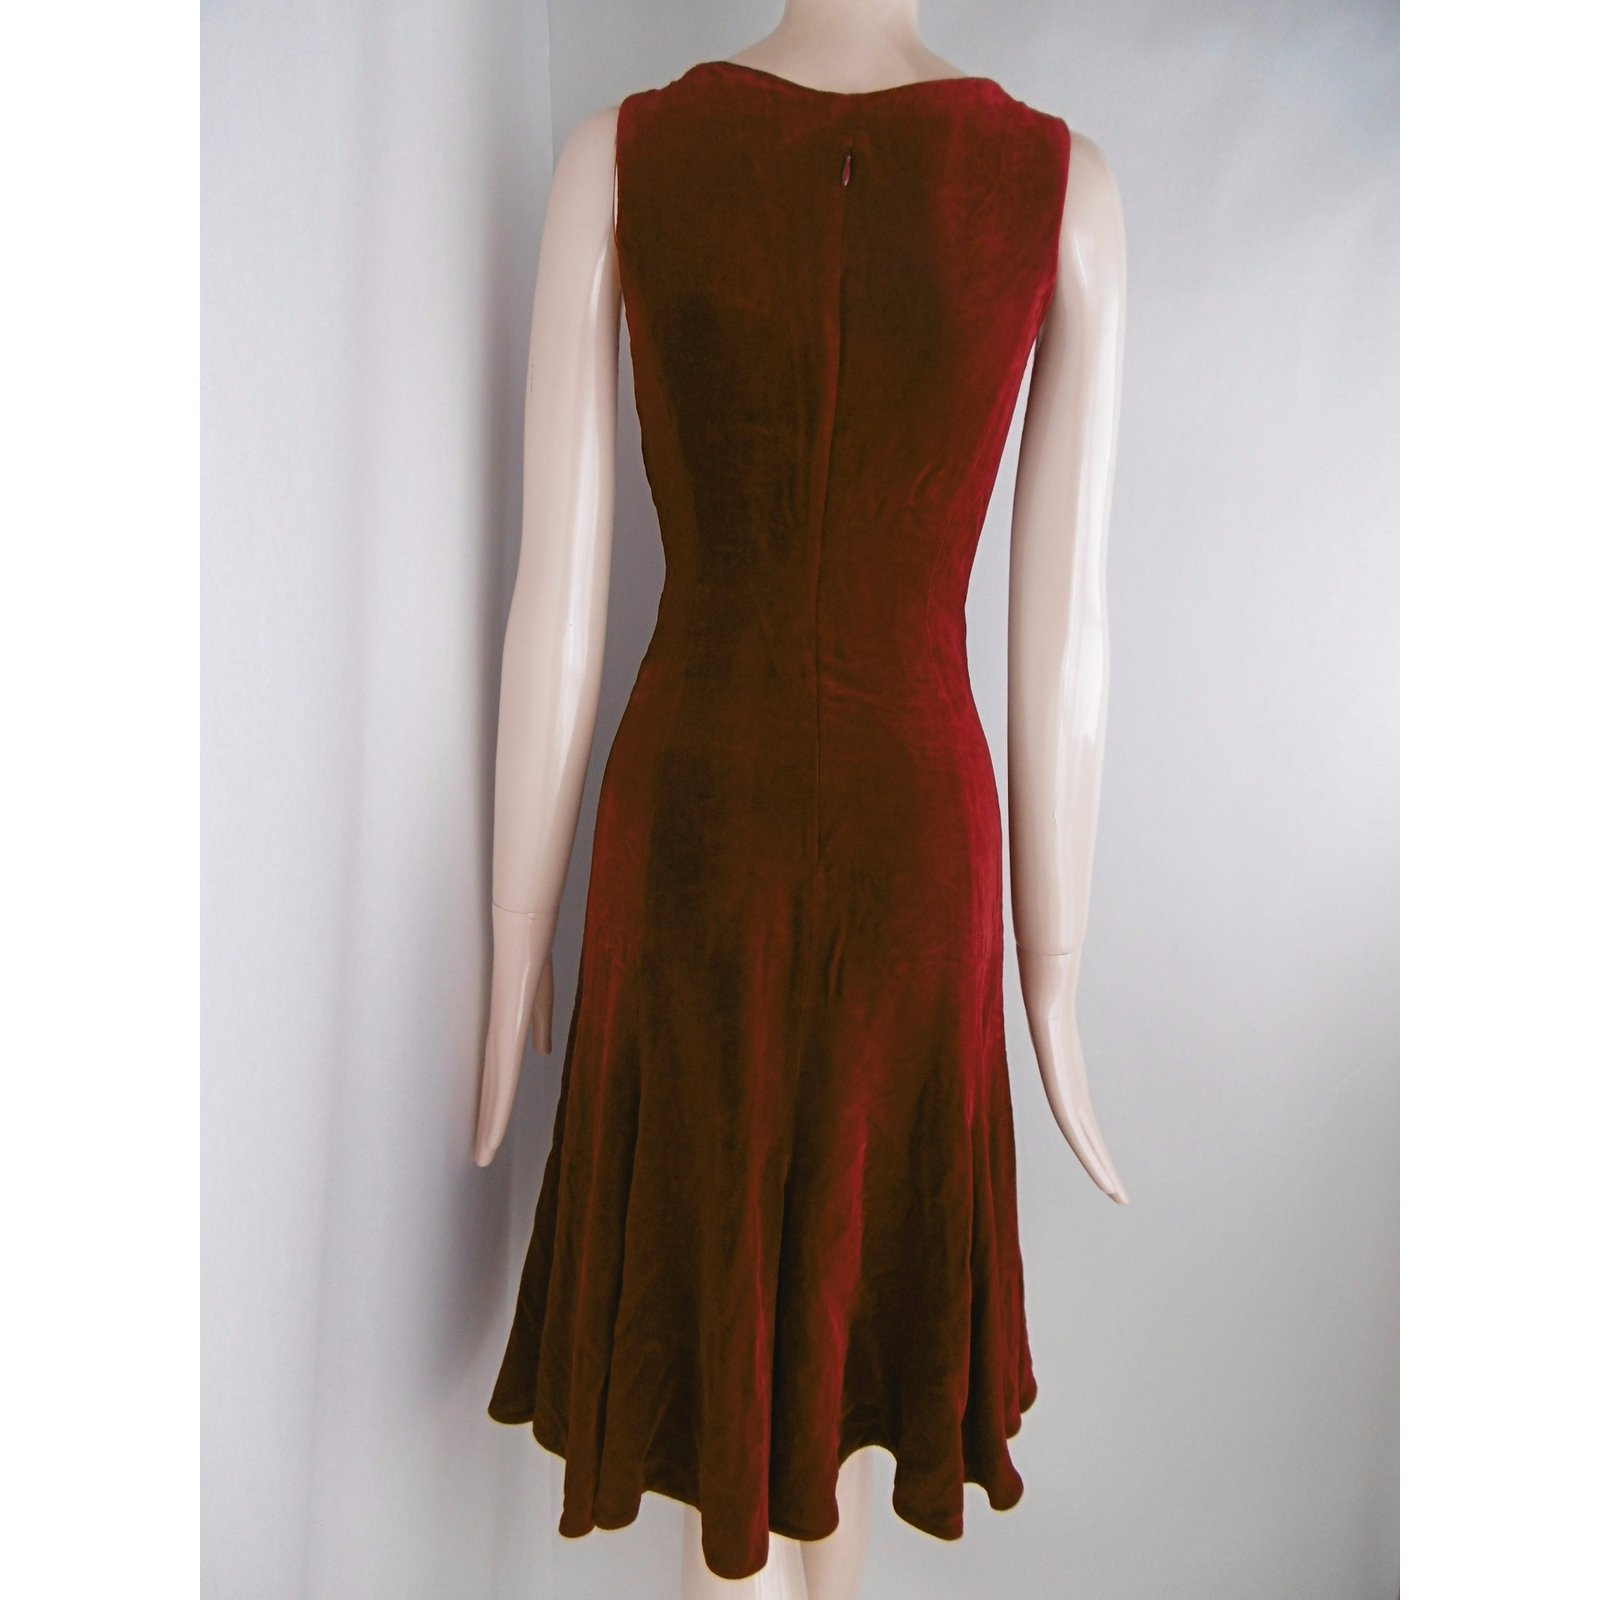 9bc0529443 Emporio Armani Emporio Armani Dress Dresses Velvet Red